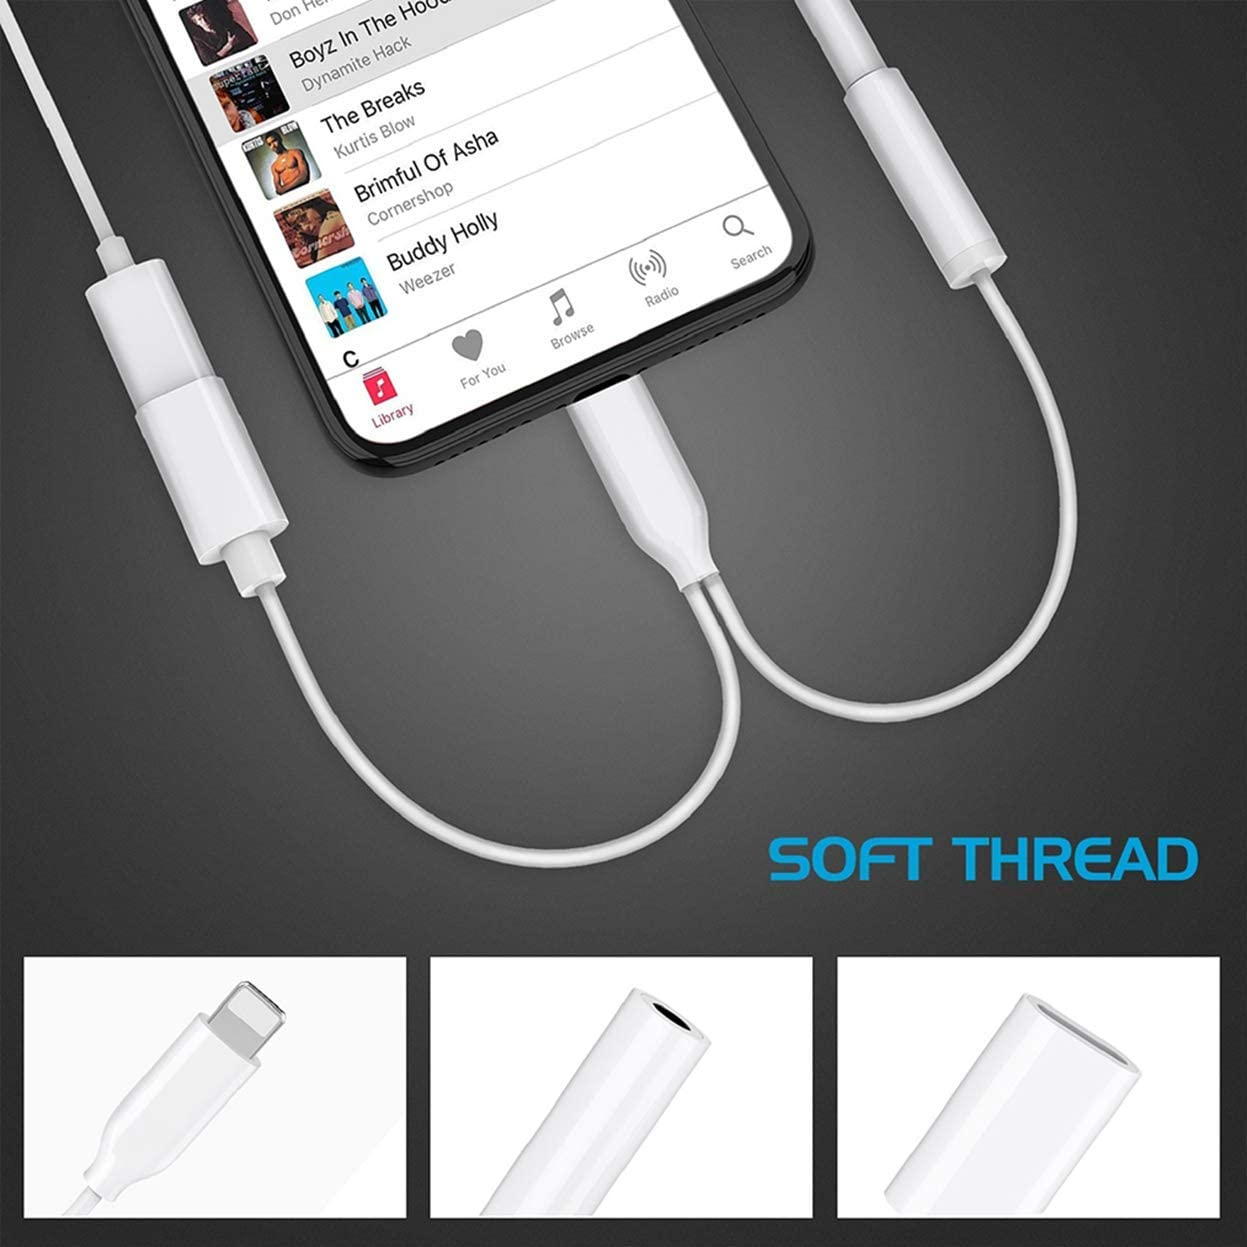 Adapter for iPhone Headphone Dual Adapter Charger Splitter 11 Aux to 3.5mm Audio for iPhone 8//8Plus//7//7Plus//X//Xs Max//XR //11 Headphones Adaptor Jack Cable /& Connector Earphones Support All iOS(White)